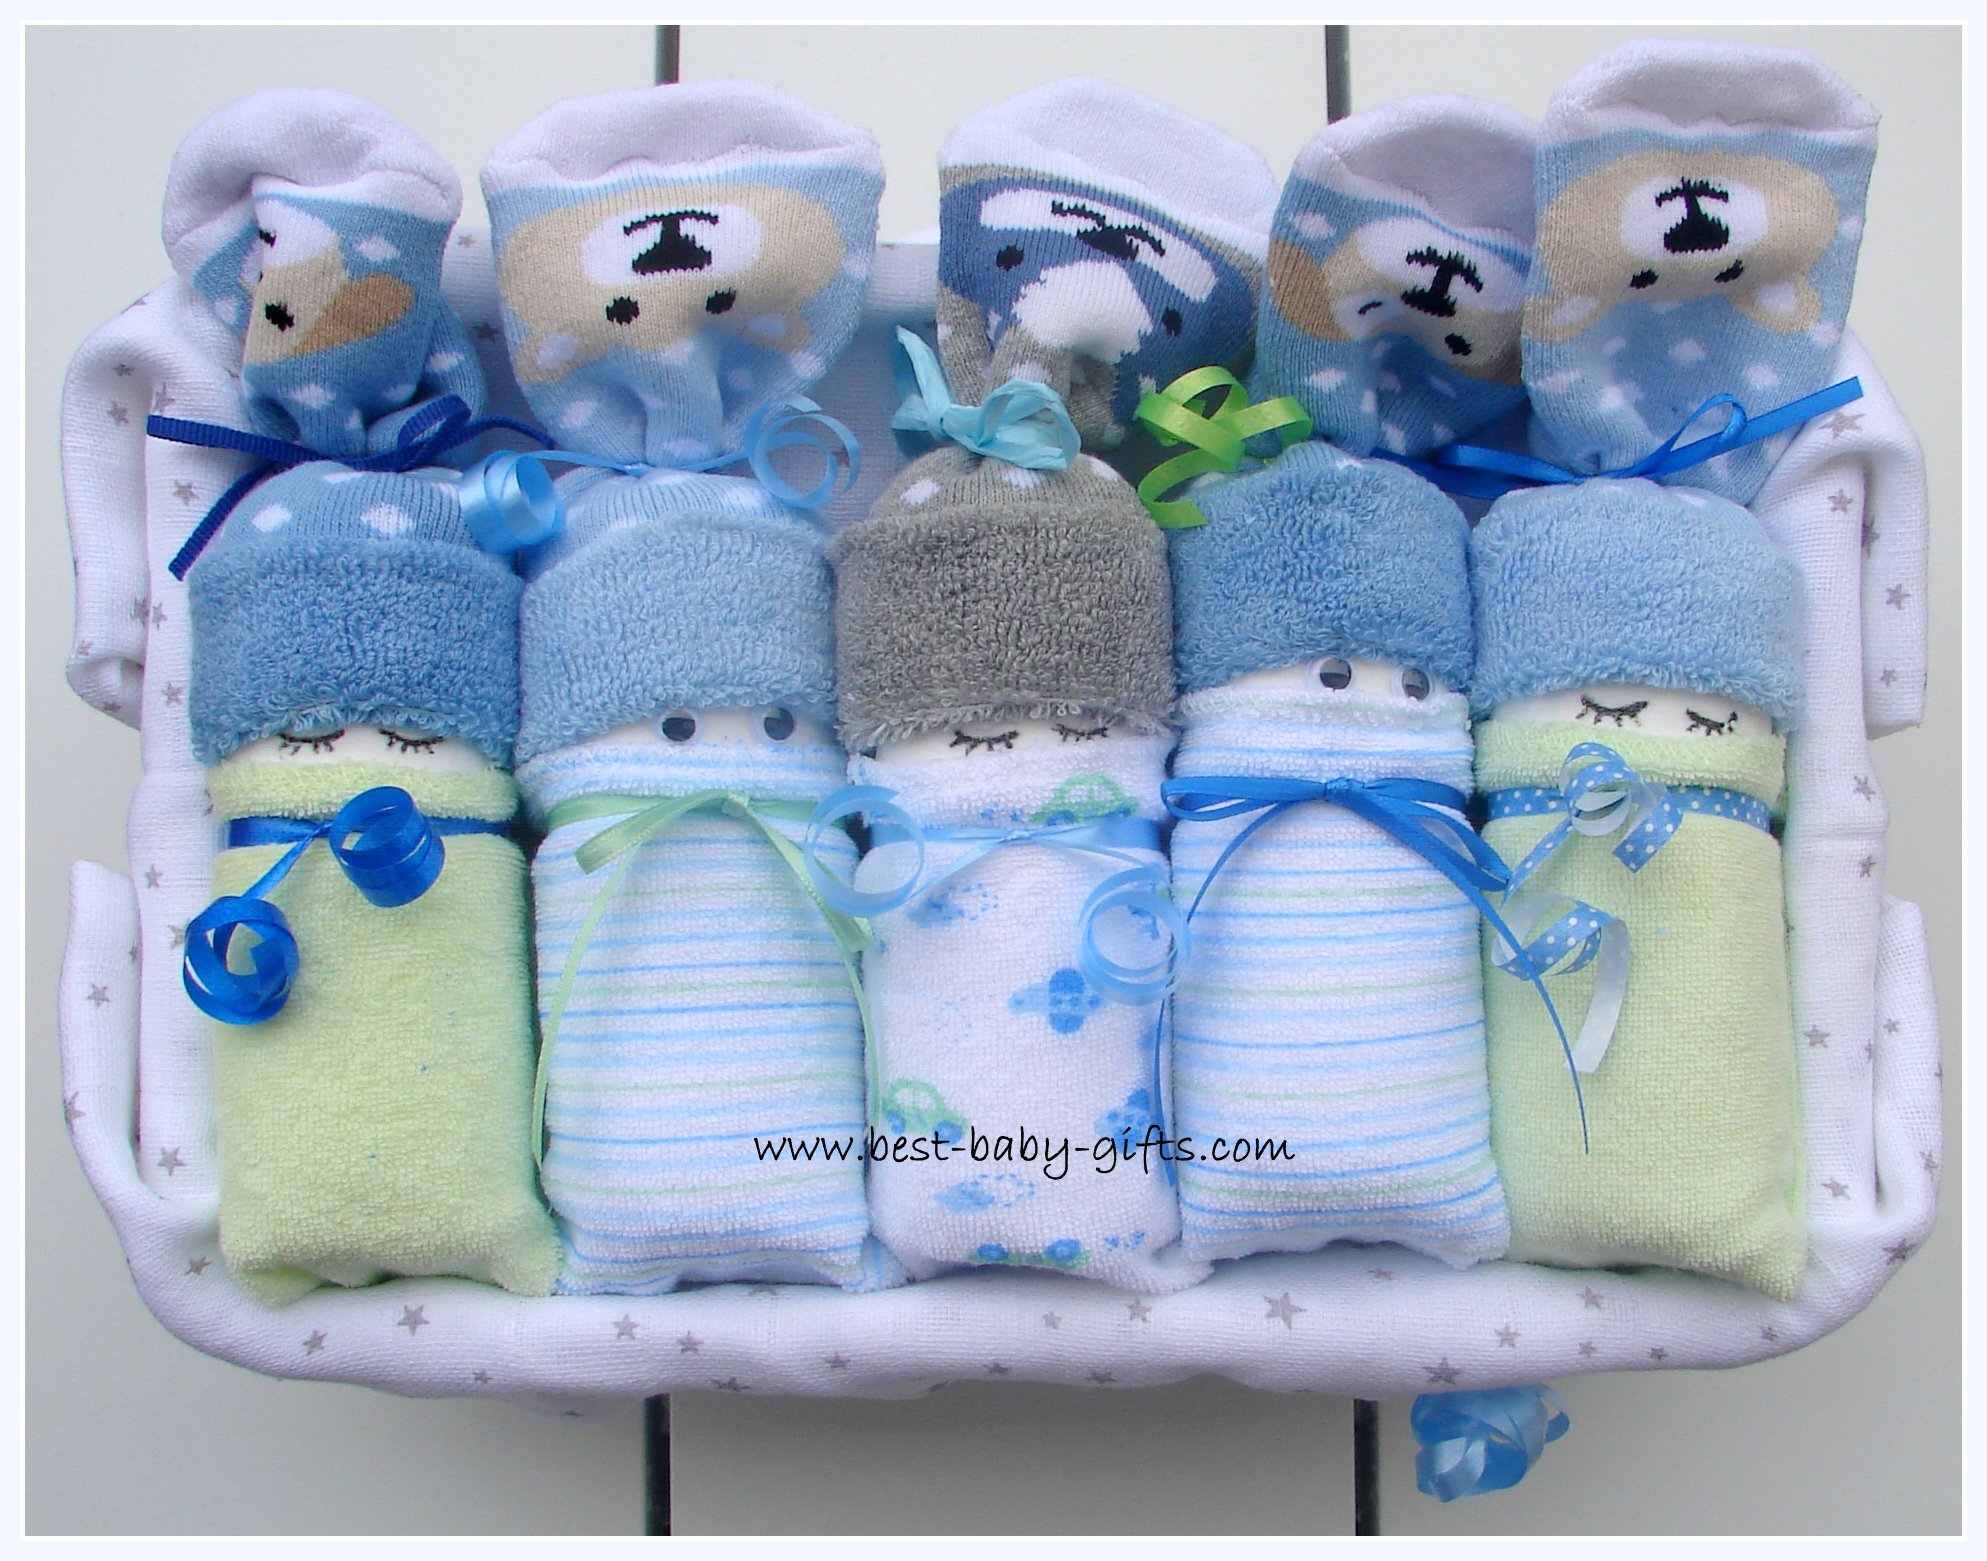 5 diaper babies in a box, for boy